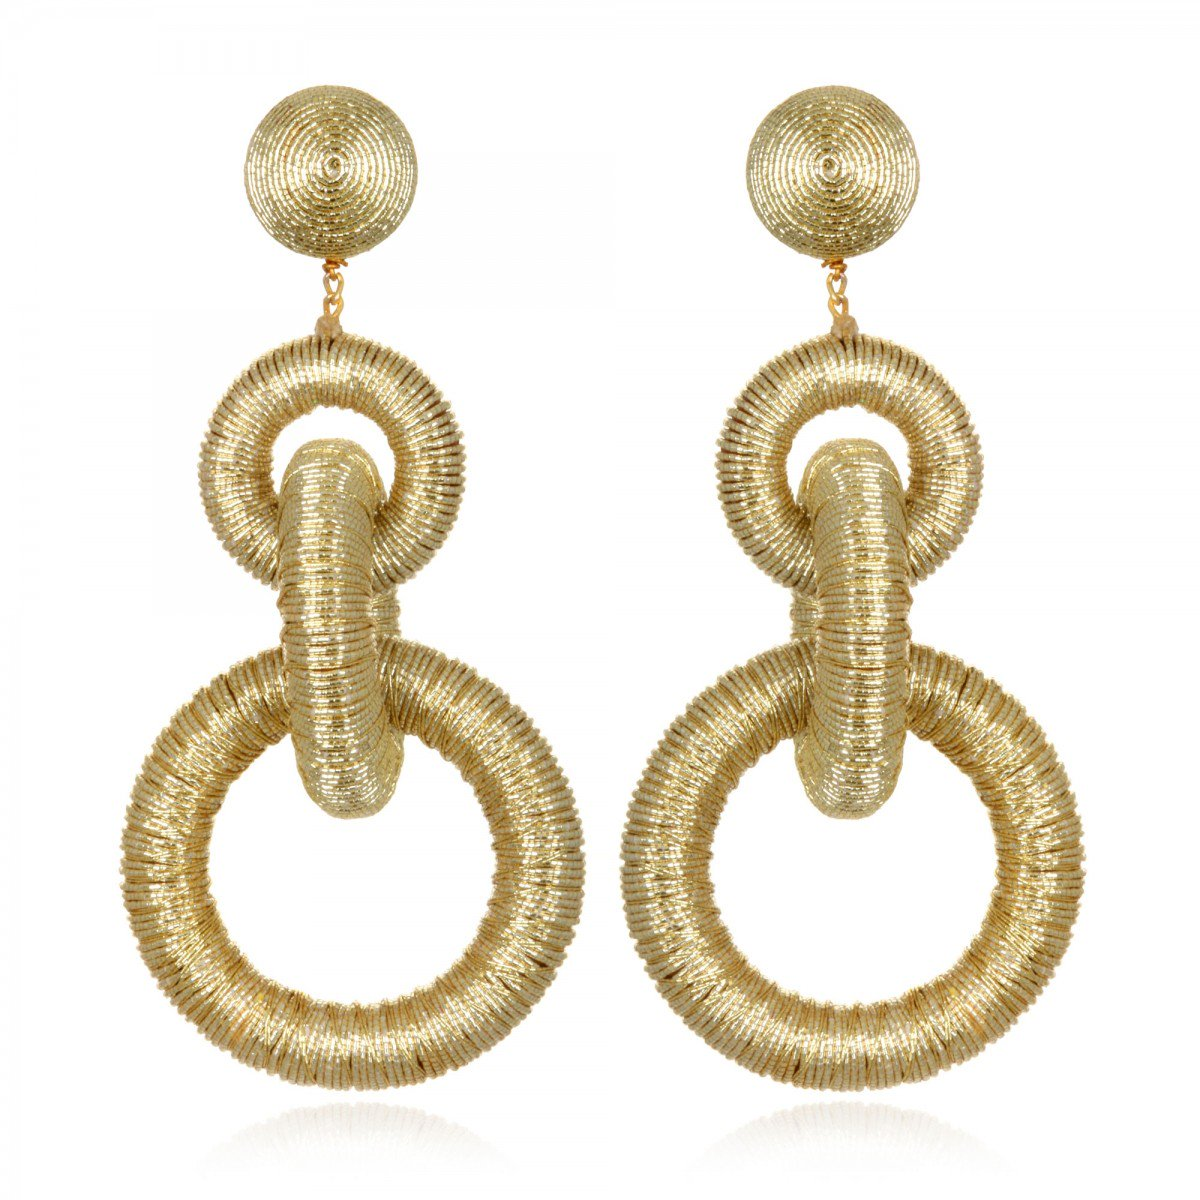 Gold Three Hoop Earrings by SUZANNA DAI